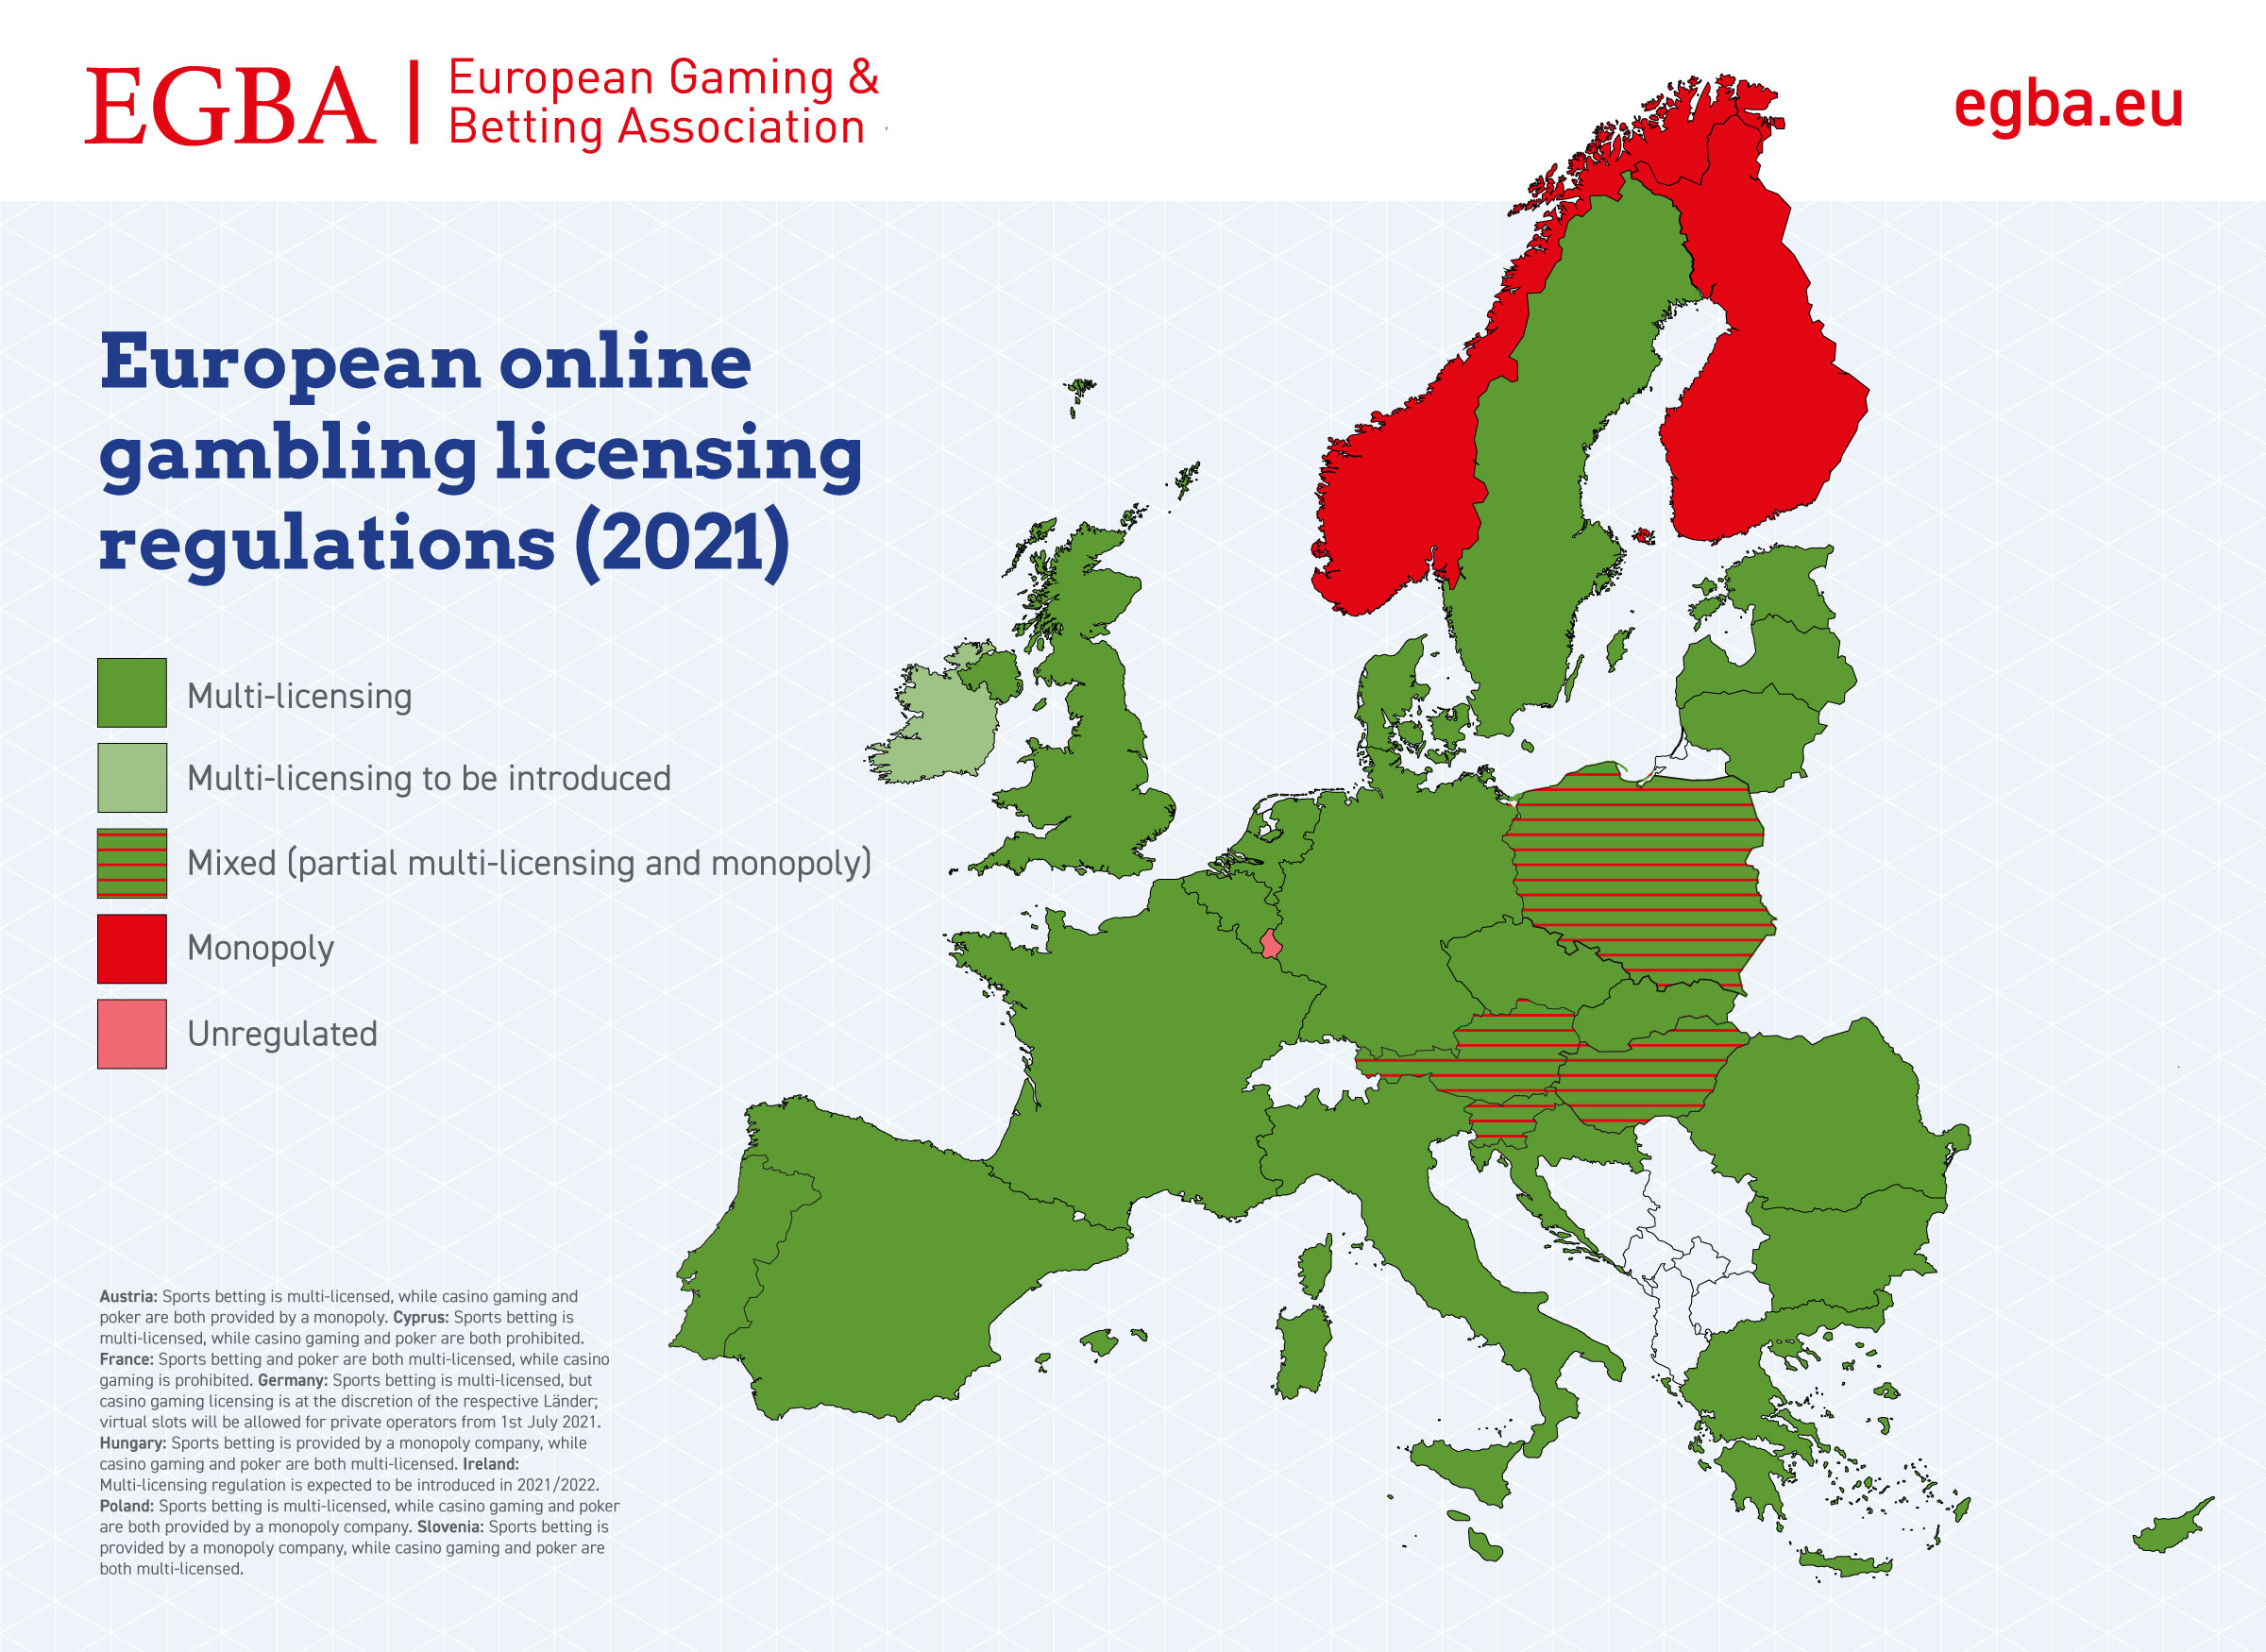 Analysis: Multi-licensing has become Europe's preferred online gambling regulation, but few monopolies remain